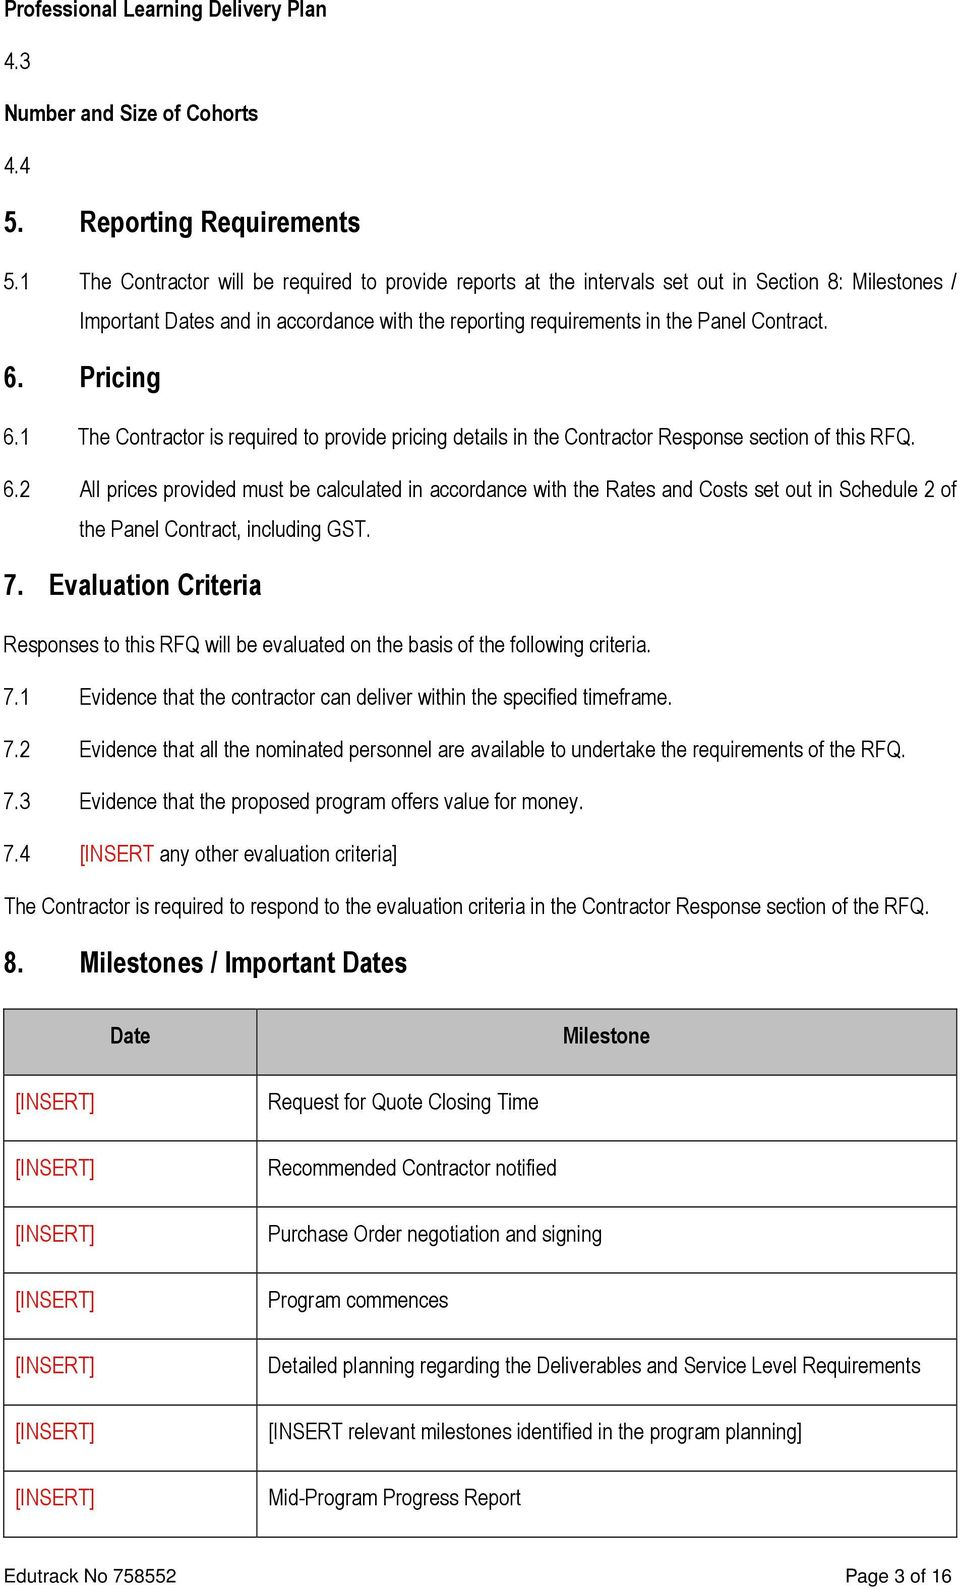 Pricing 6.1 The Contractor is required to provide pricing details in the Contractor Response section of this RFQ. 6.2 All prices provided must be calculated in accordance with the Rates and Costs set out in Schedule 2 of the Panel Contract, including GST.